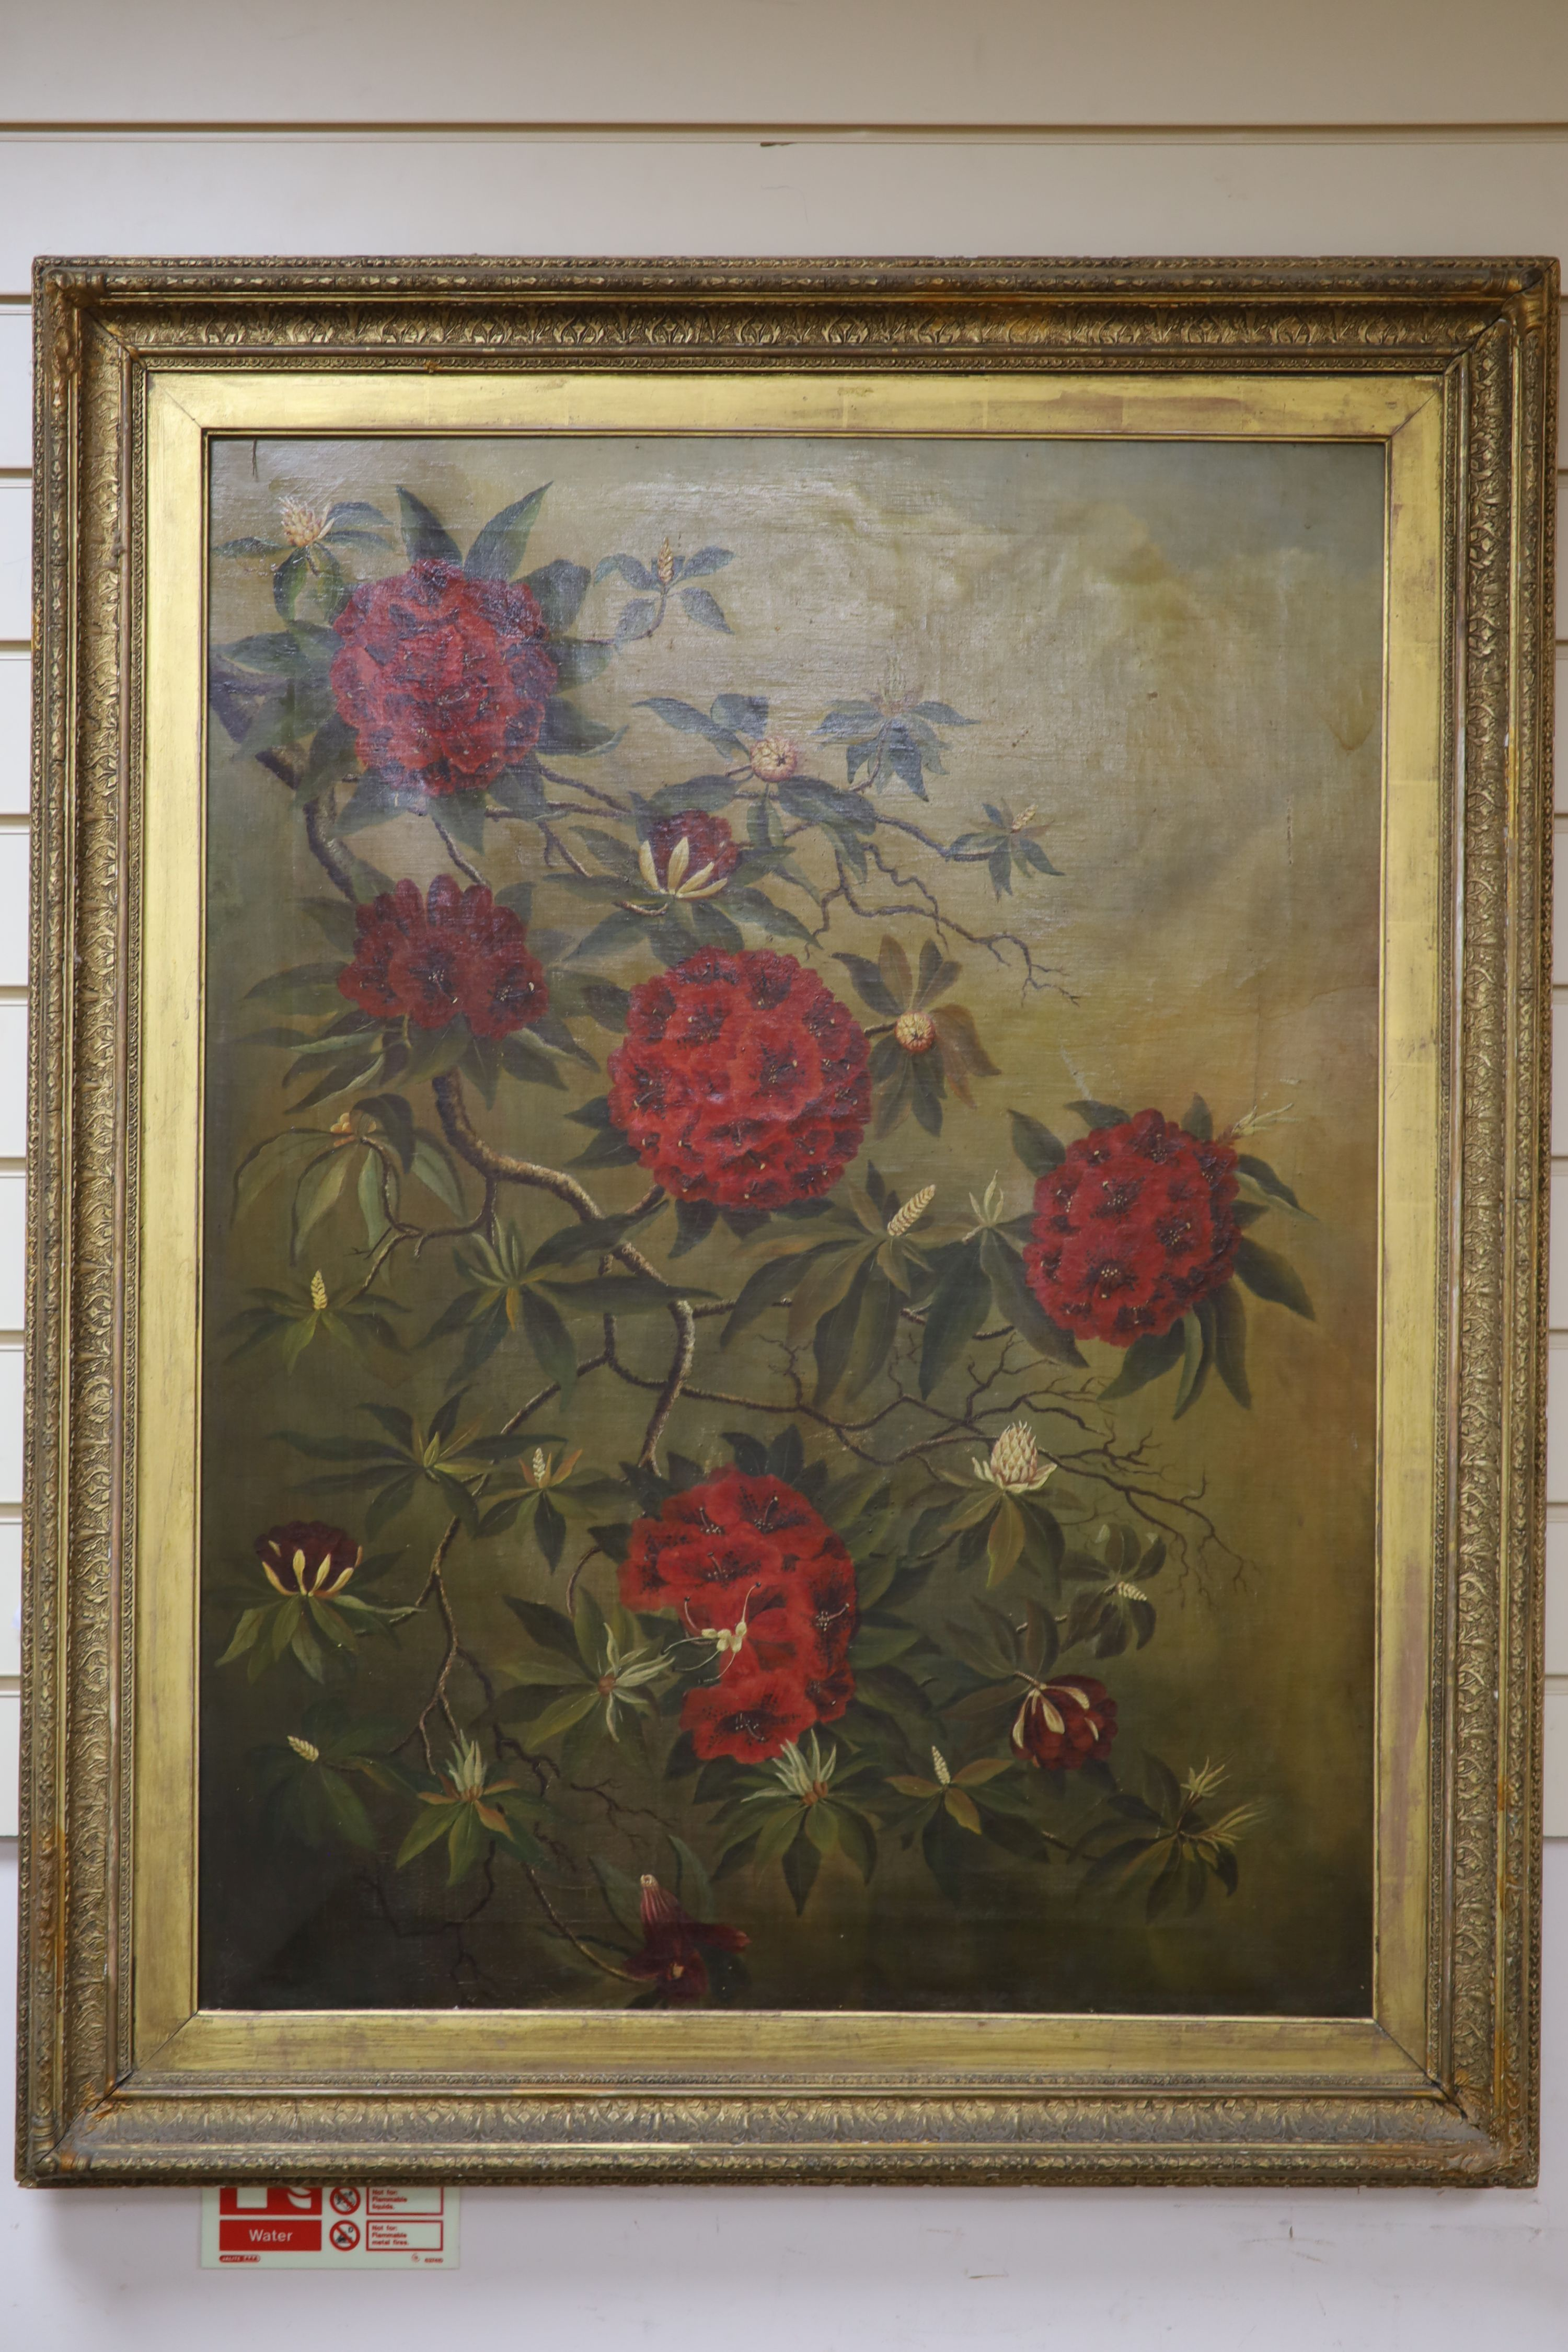 English School c.1900, oil on canvas, Study of Rhododendron blossom, indistinctly signed, 90 x 67cm - Image 2 of 2